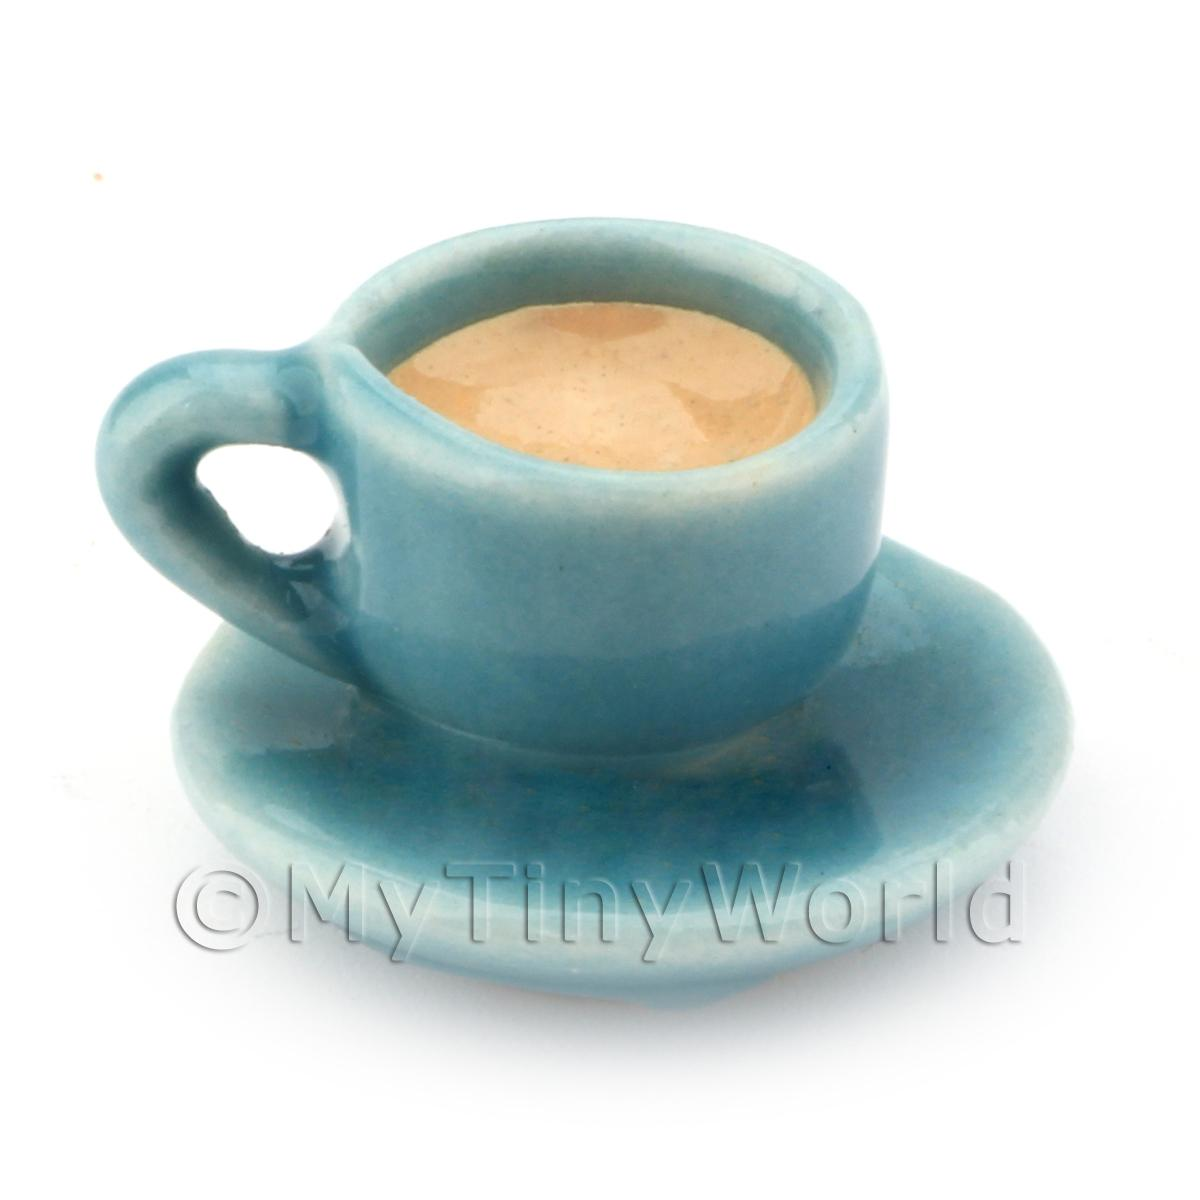 Dolls House Miniature Handmade Cup of Coffee / Tea - Aqua Ceramic